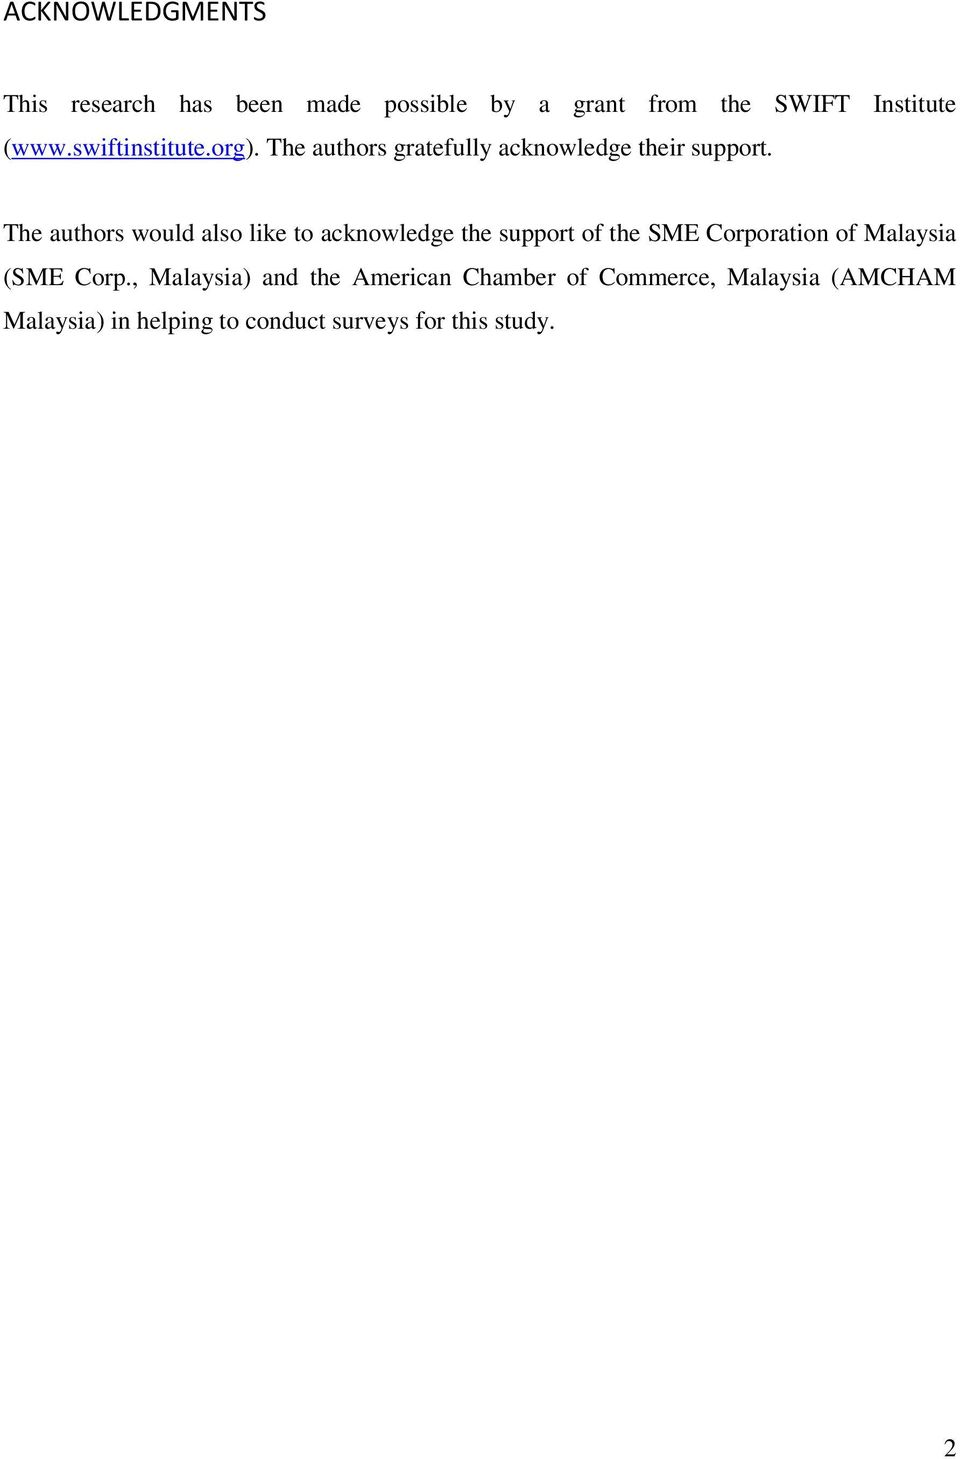 The authors would also like to acknowledge the support of the SME Corporation of Malaysia (SME